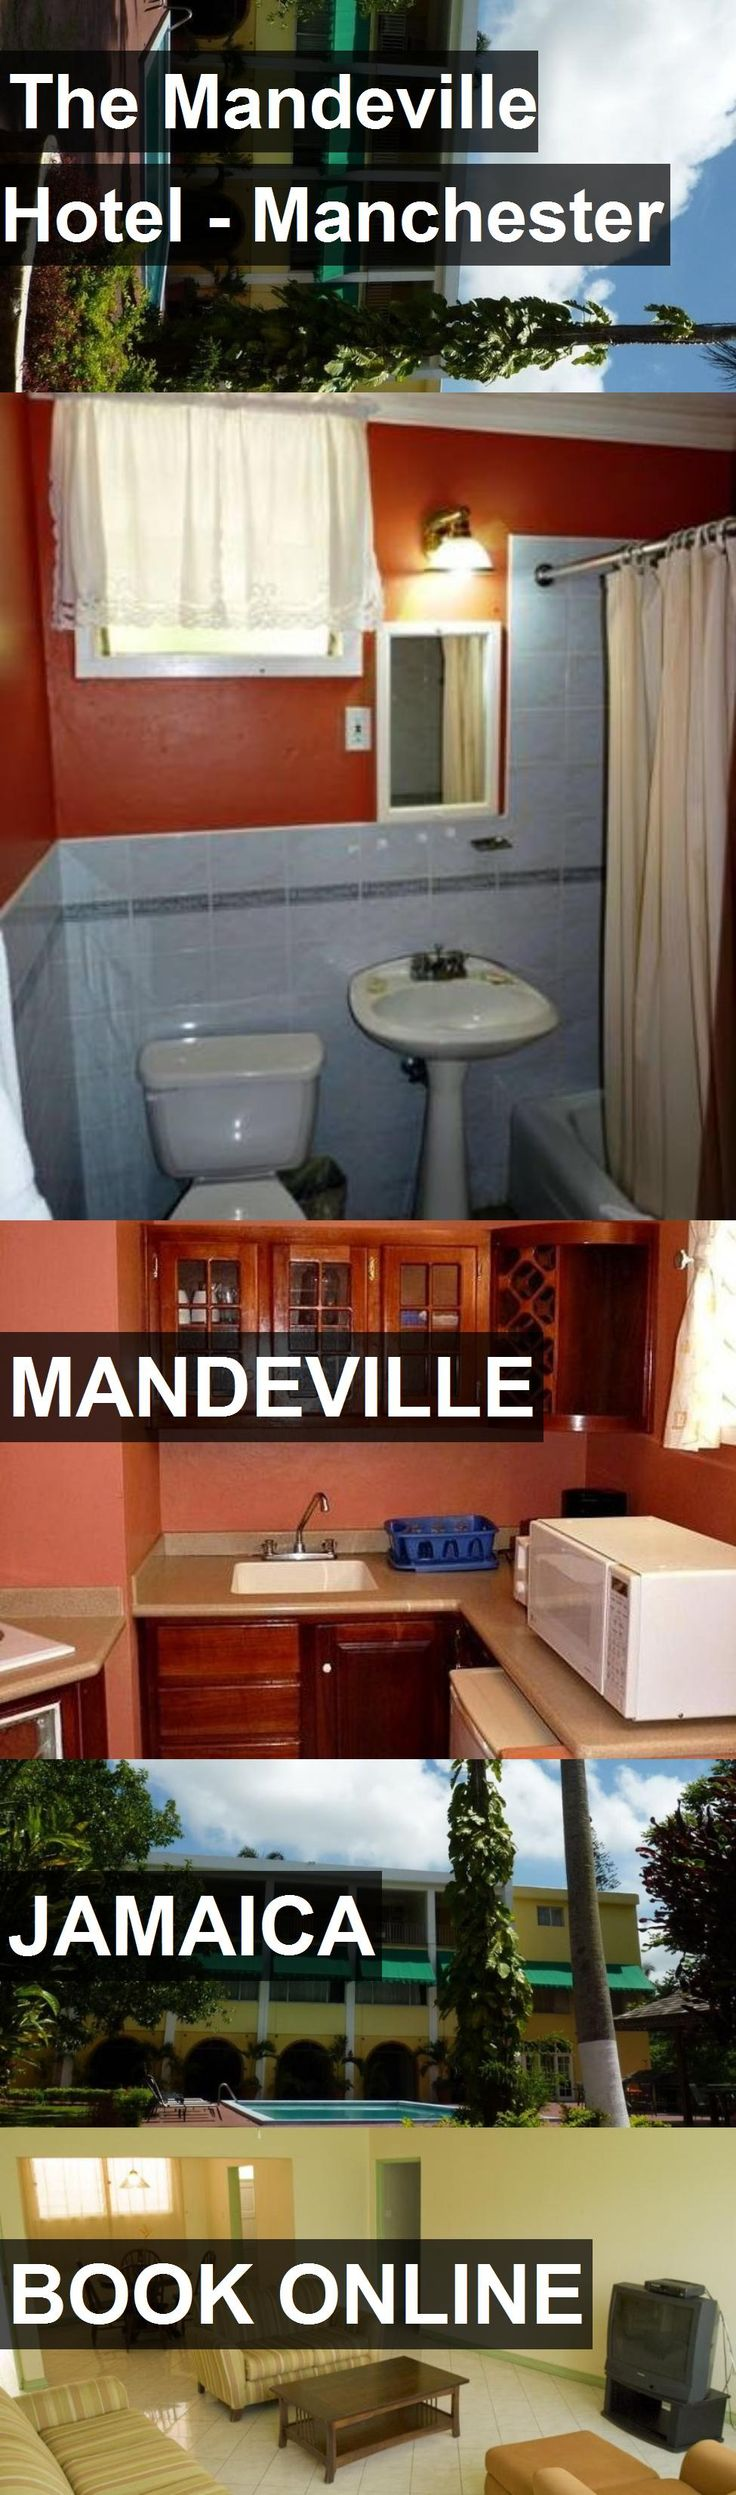 The Mandeville Hotel - Manchester in Mandeville, Jamaica. For more information, photos, reviews and best prices please follow the link. #Jamaica #Mandeville #travel #vacation #hotel